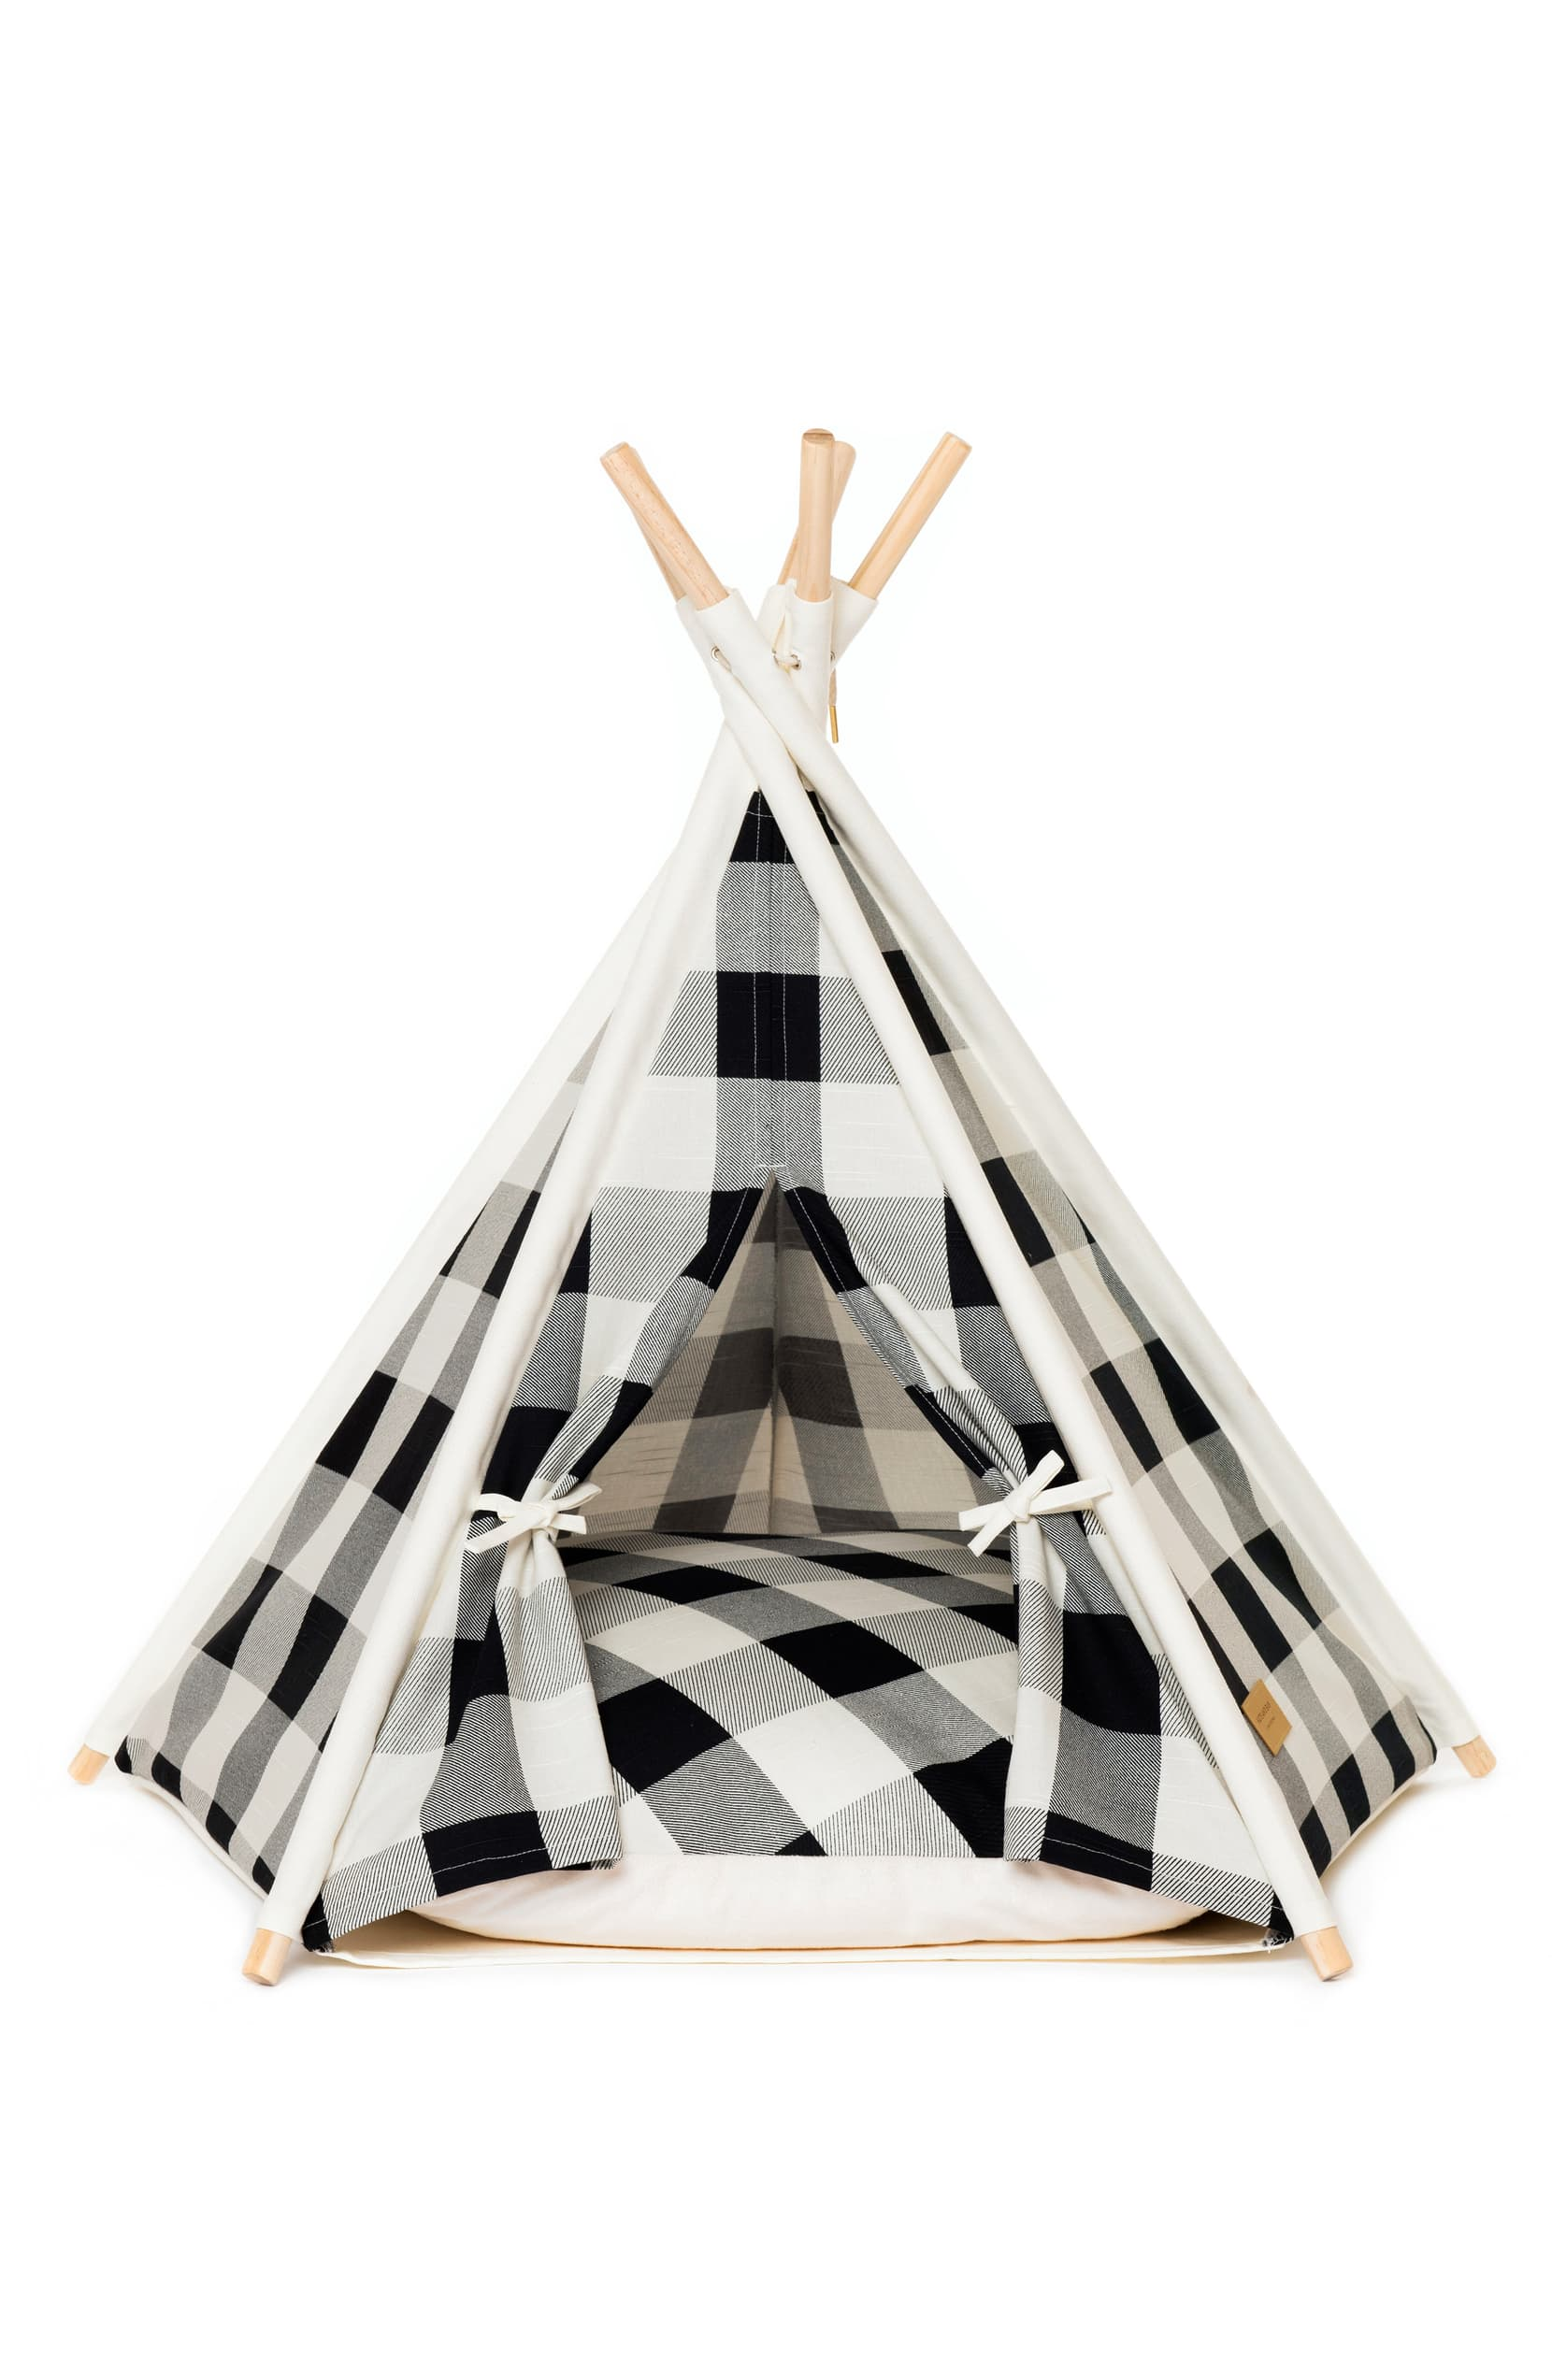 "<a  href=""https://shop.nordstrom.com/s/huts-and-bay-pet-teepee-tent/5385589?origin=keywordsearch-personalizedsort&breadcrumb=Home%2FAll%20Results&color=black%2F%20white"" target=""_blank"" title=""https://shop.nordstrom.com/s/huts-and-bay-pet-teepee-tent/5385589?origin=keywordsearch-personalizedsort&breadcrumb=Home%2FAll%20Results&color=black%2F%20white"">Pet Teepee Tent by HUTS AND BAY ($136.00)</a>{&nbsp;}Smart gingham checks give fresh, playful style to a charming canvas teepee that makes the perfect indoor sanctuary for your furry friend. (Image: Nordstrom){&nbsp;}"